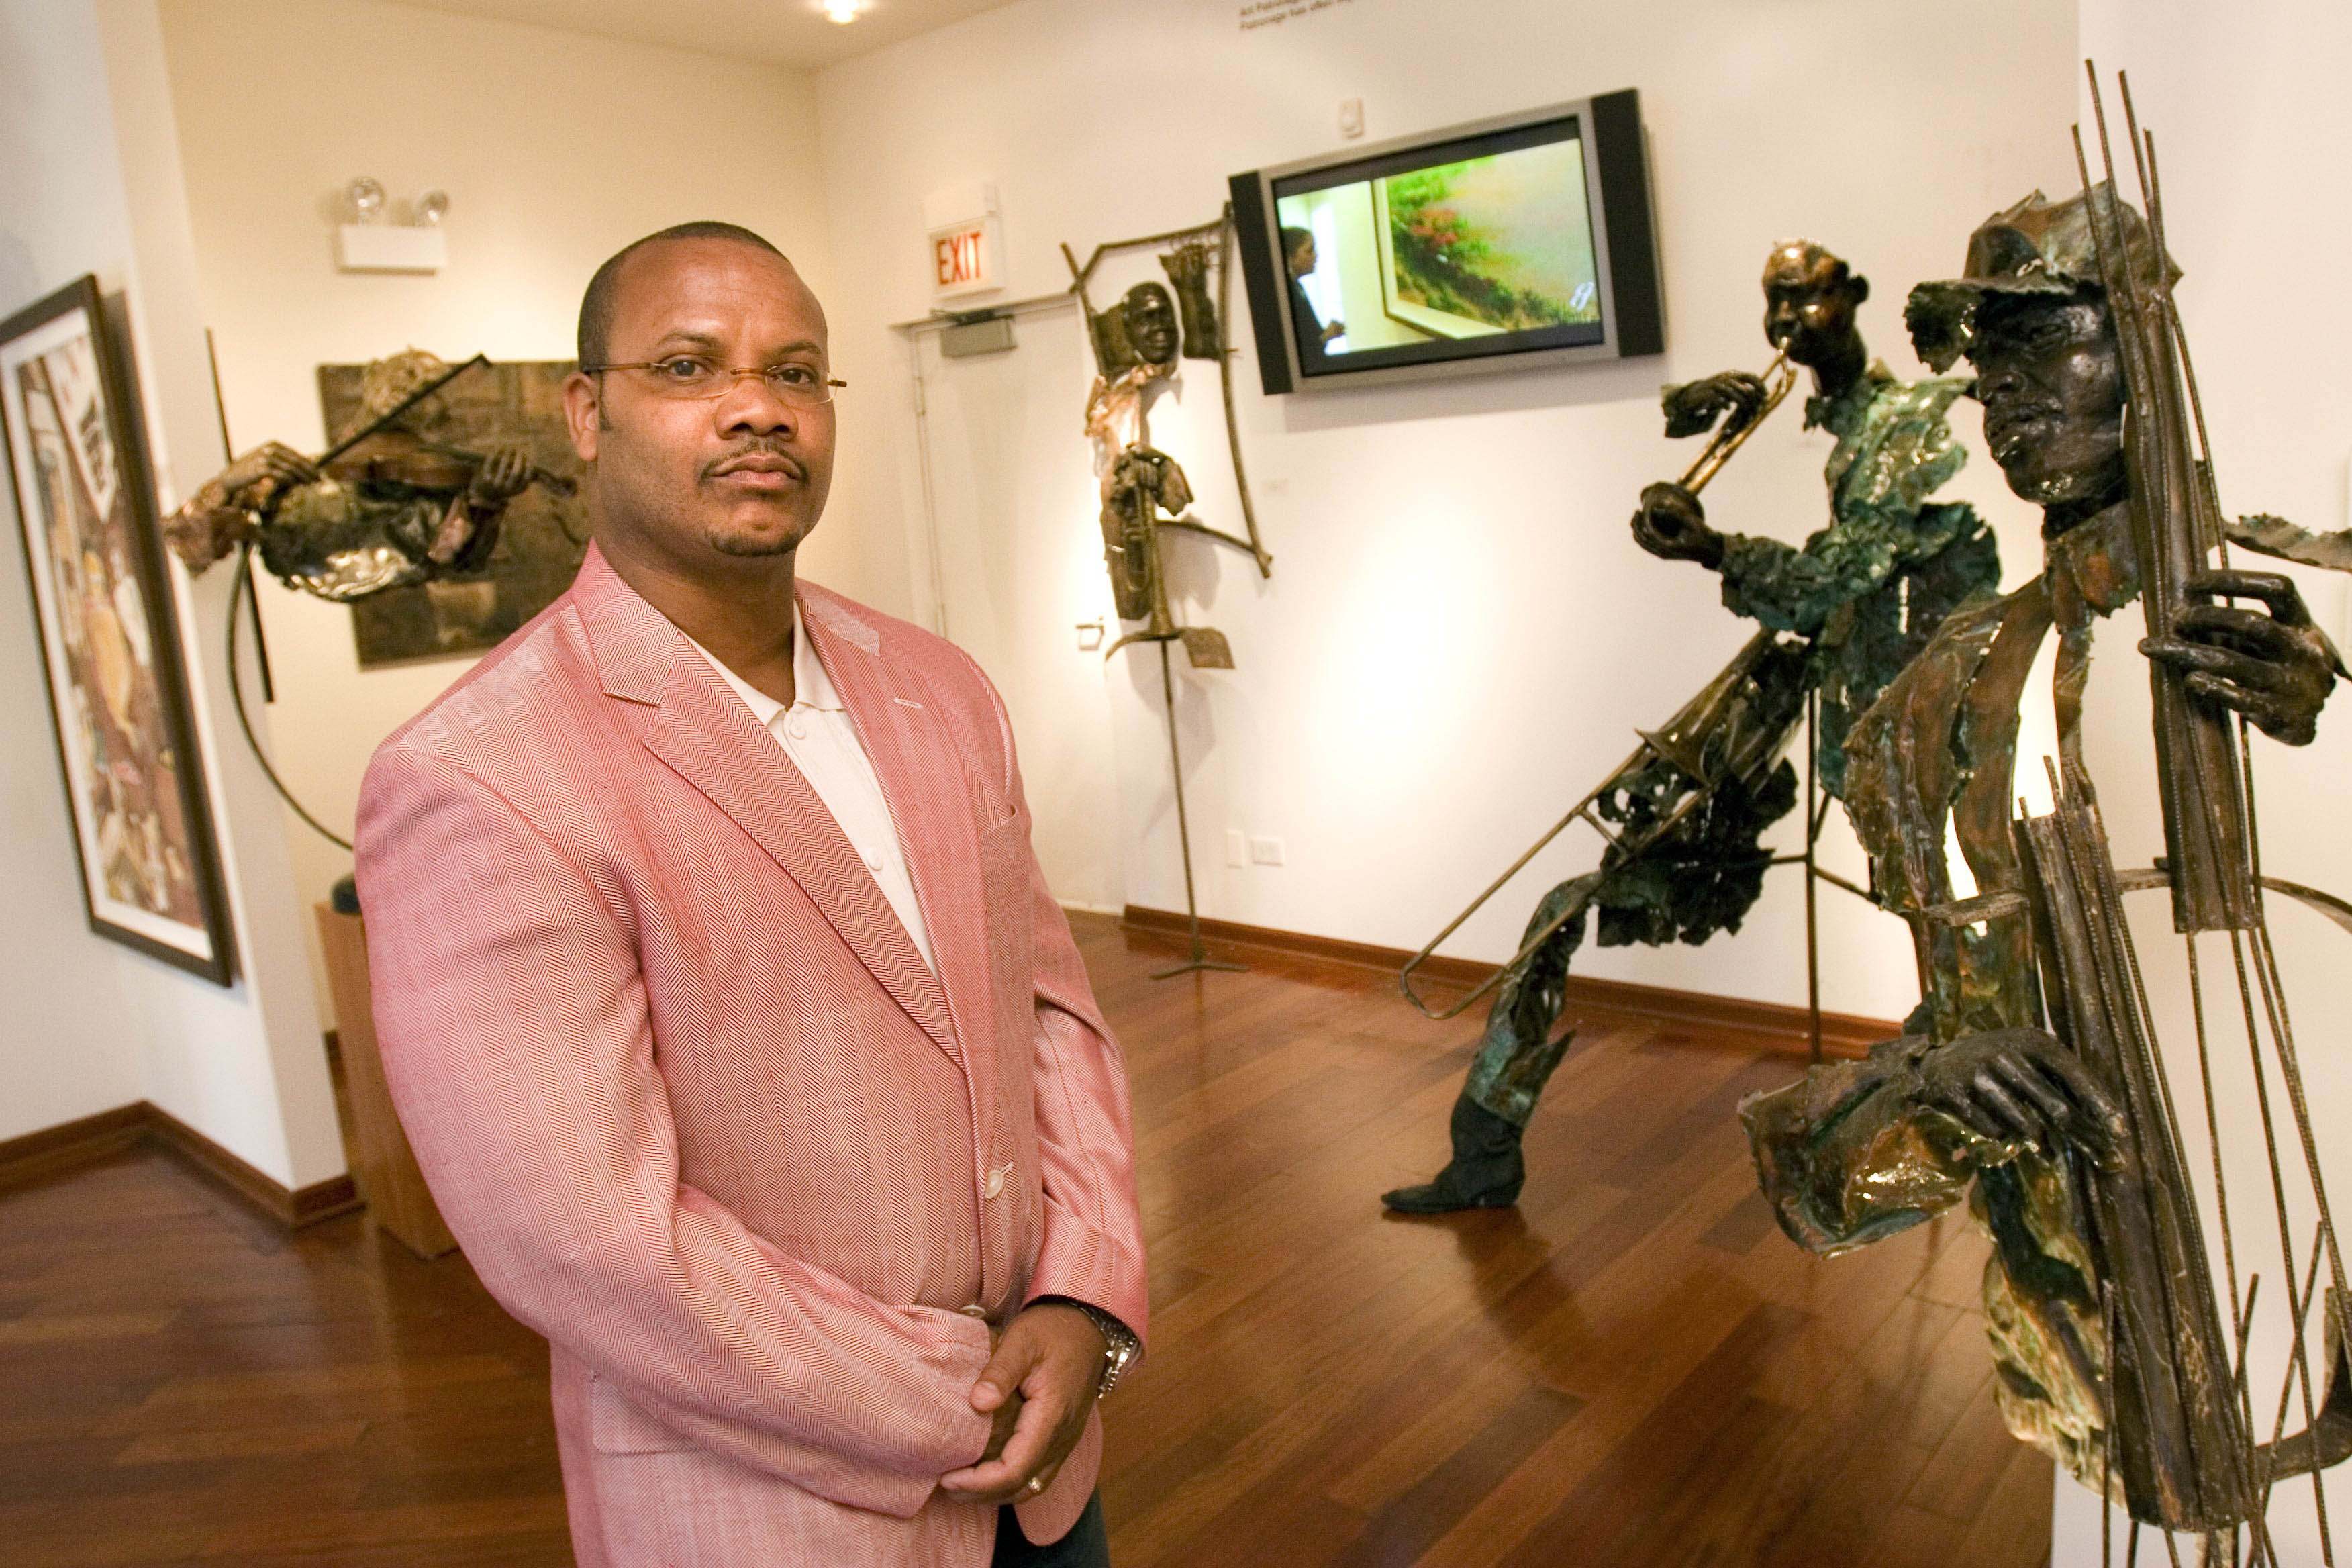 Gallery owner Andre Guichard stands amid the works on display at Gallery Guichard, 3521 S. King Drive.